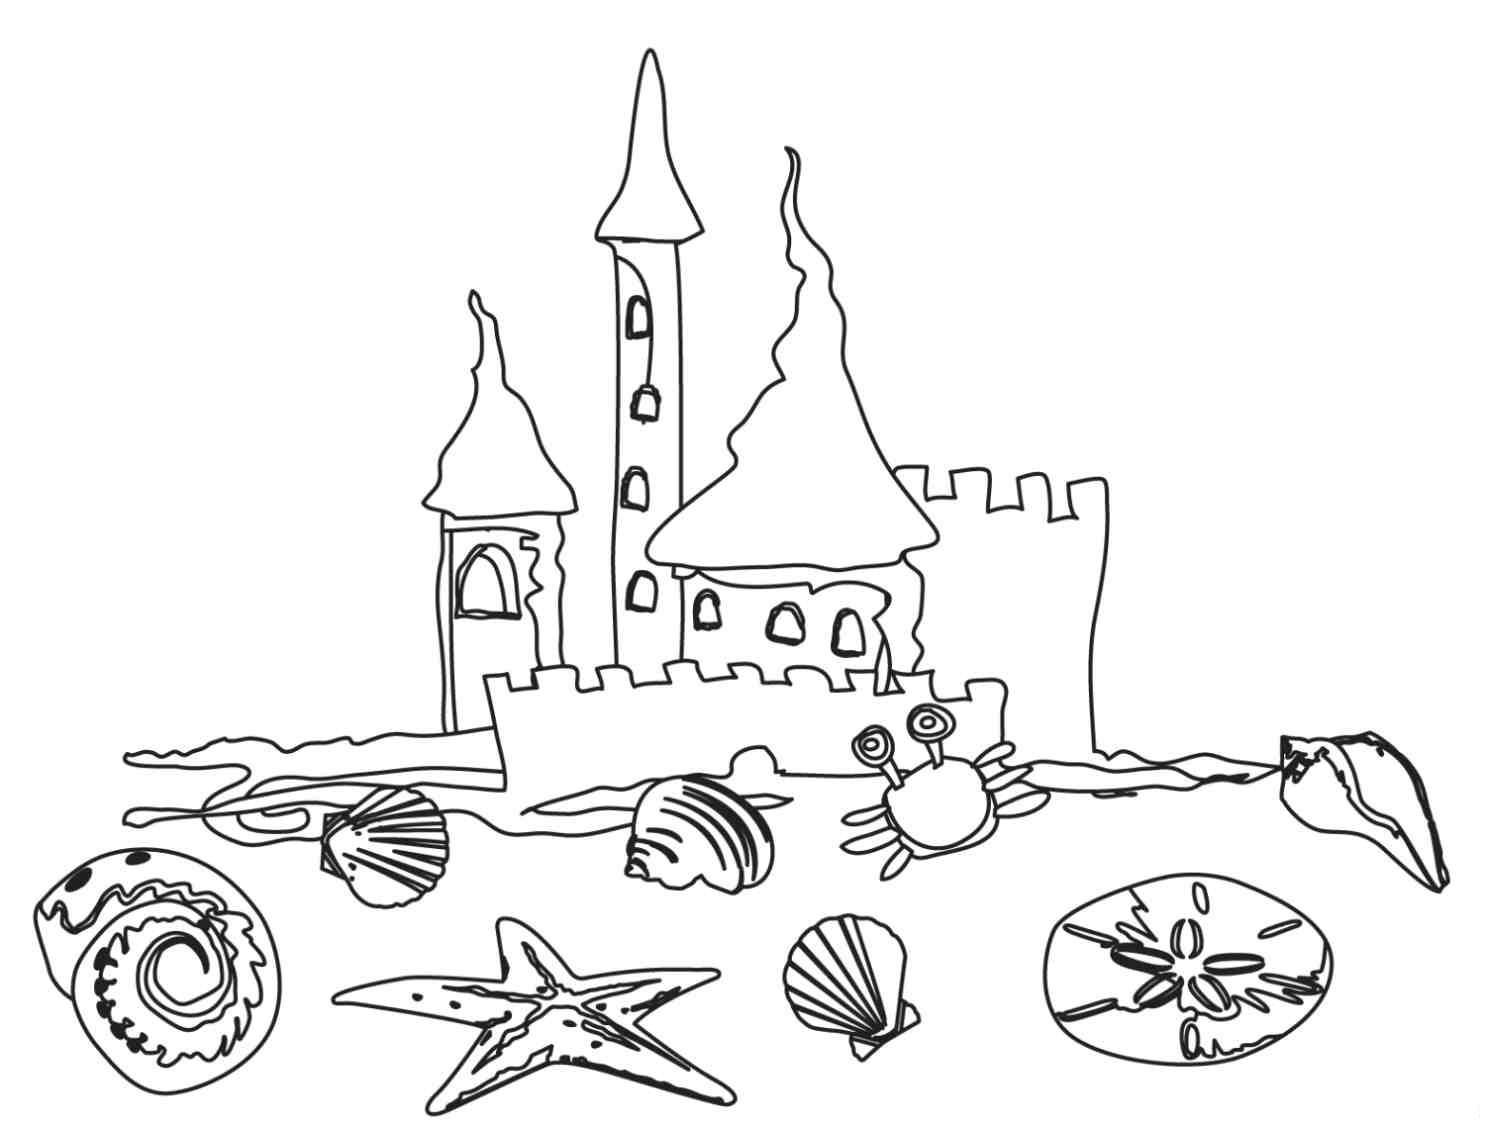 Beach Coloring Pages For Kids  Free Printable Beach Coloring Pages For Kids